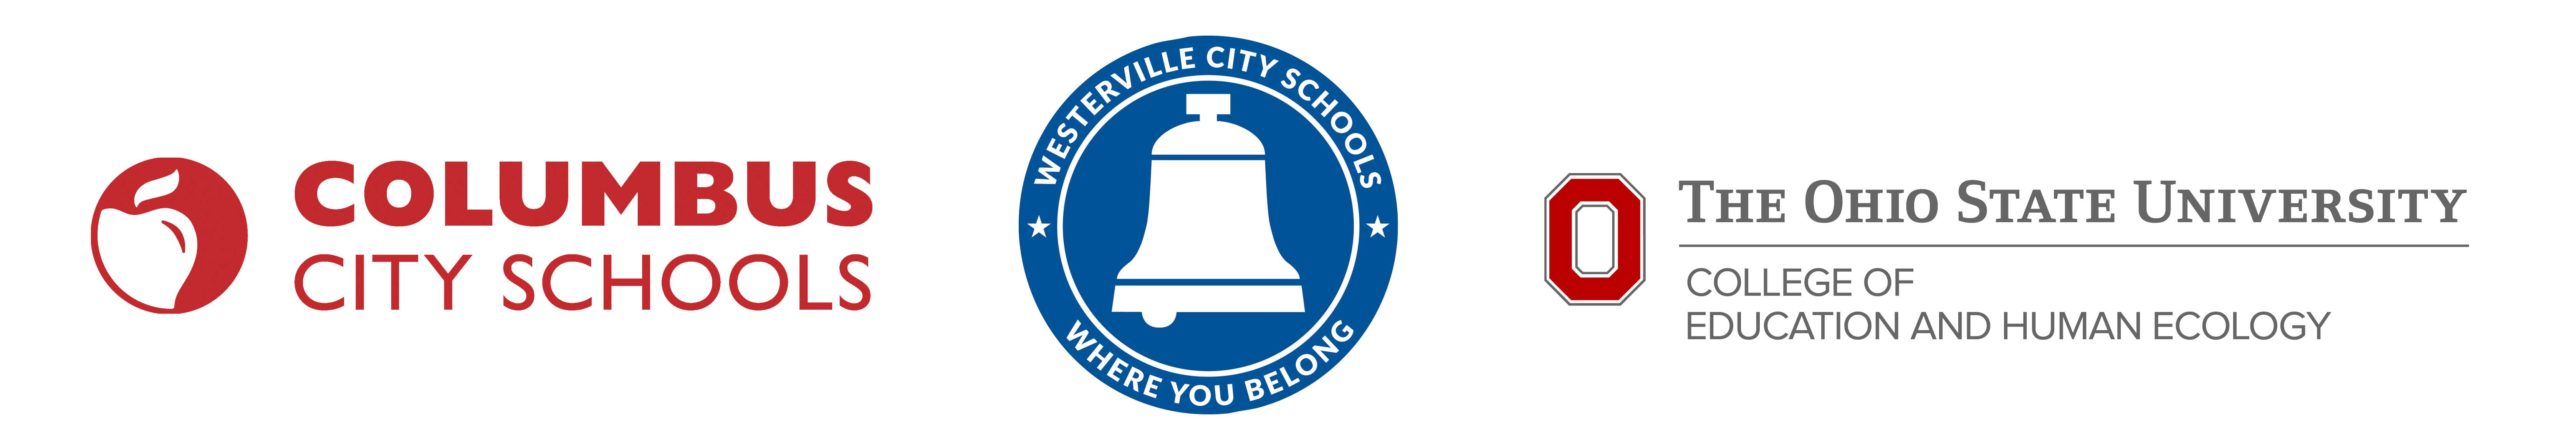 COLUMBUS CITY SCHOOL LOGO, WESTERVILLE CITY SCHOOLS LOGO, COLLEGE OF EDUCATION AND HUMAN ECOLOGY LOGO